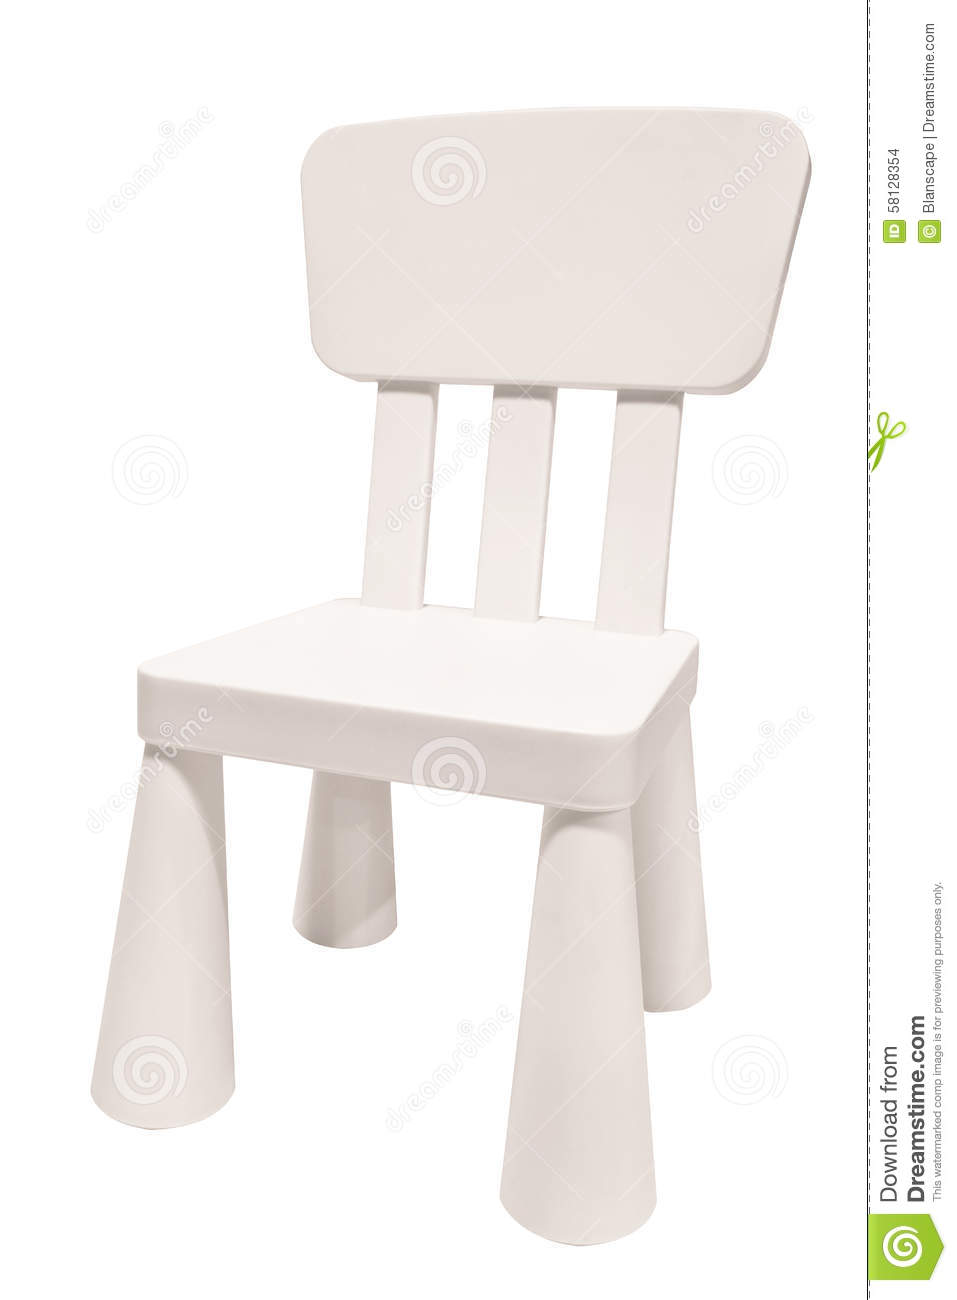 Chaise blanche de plastique d 39 enfants photo stock image for Chaise blanche plastique